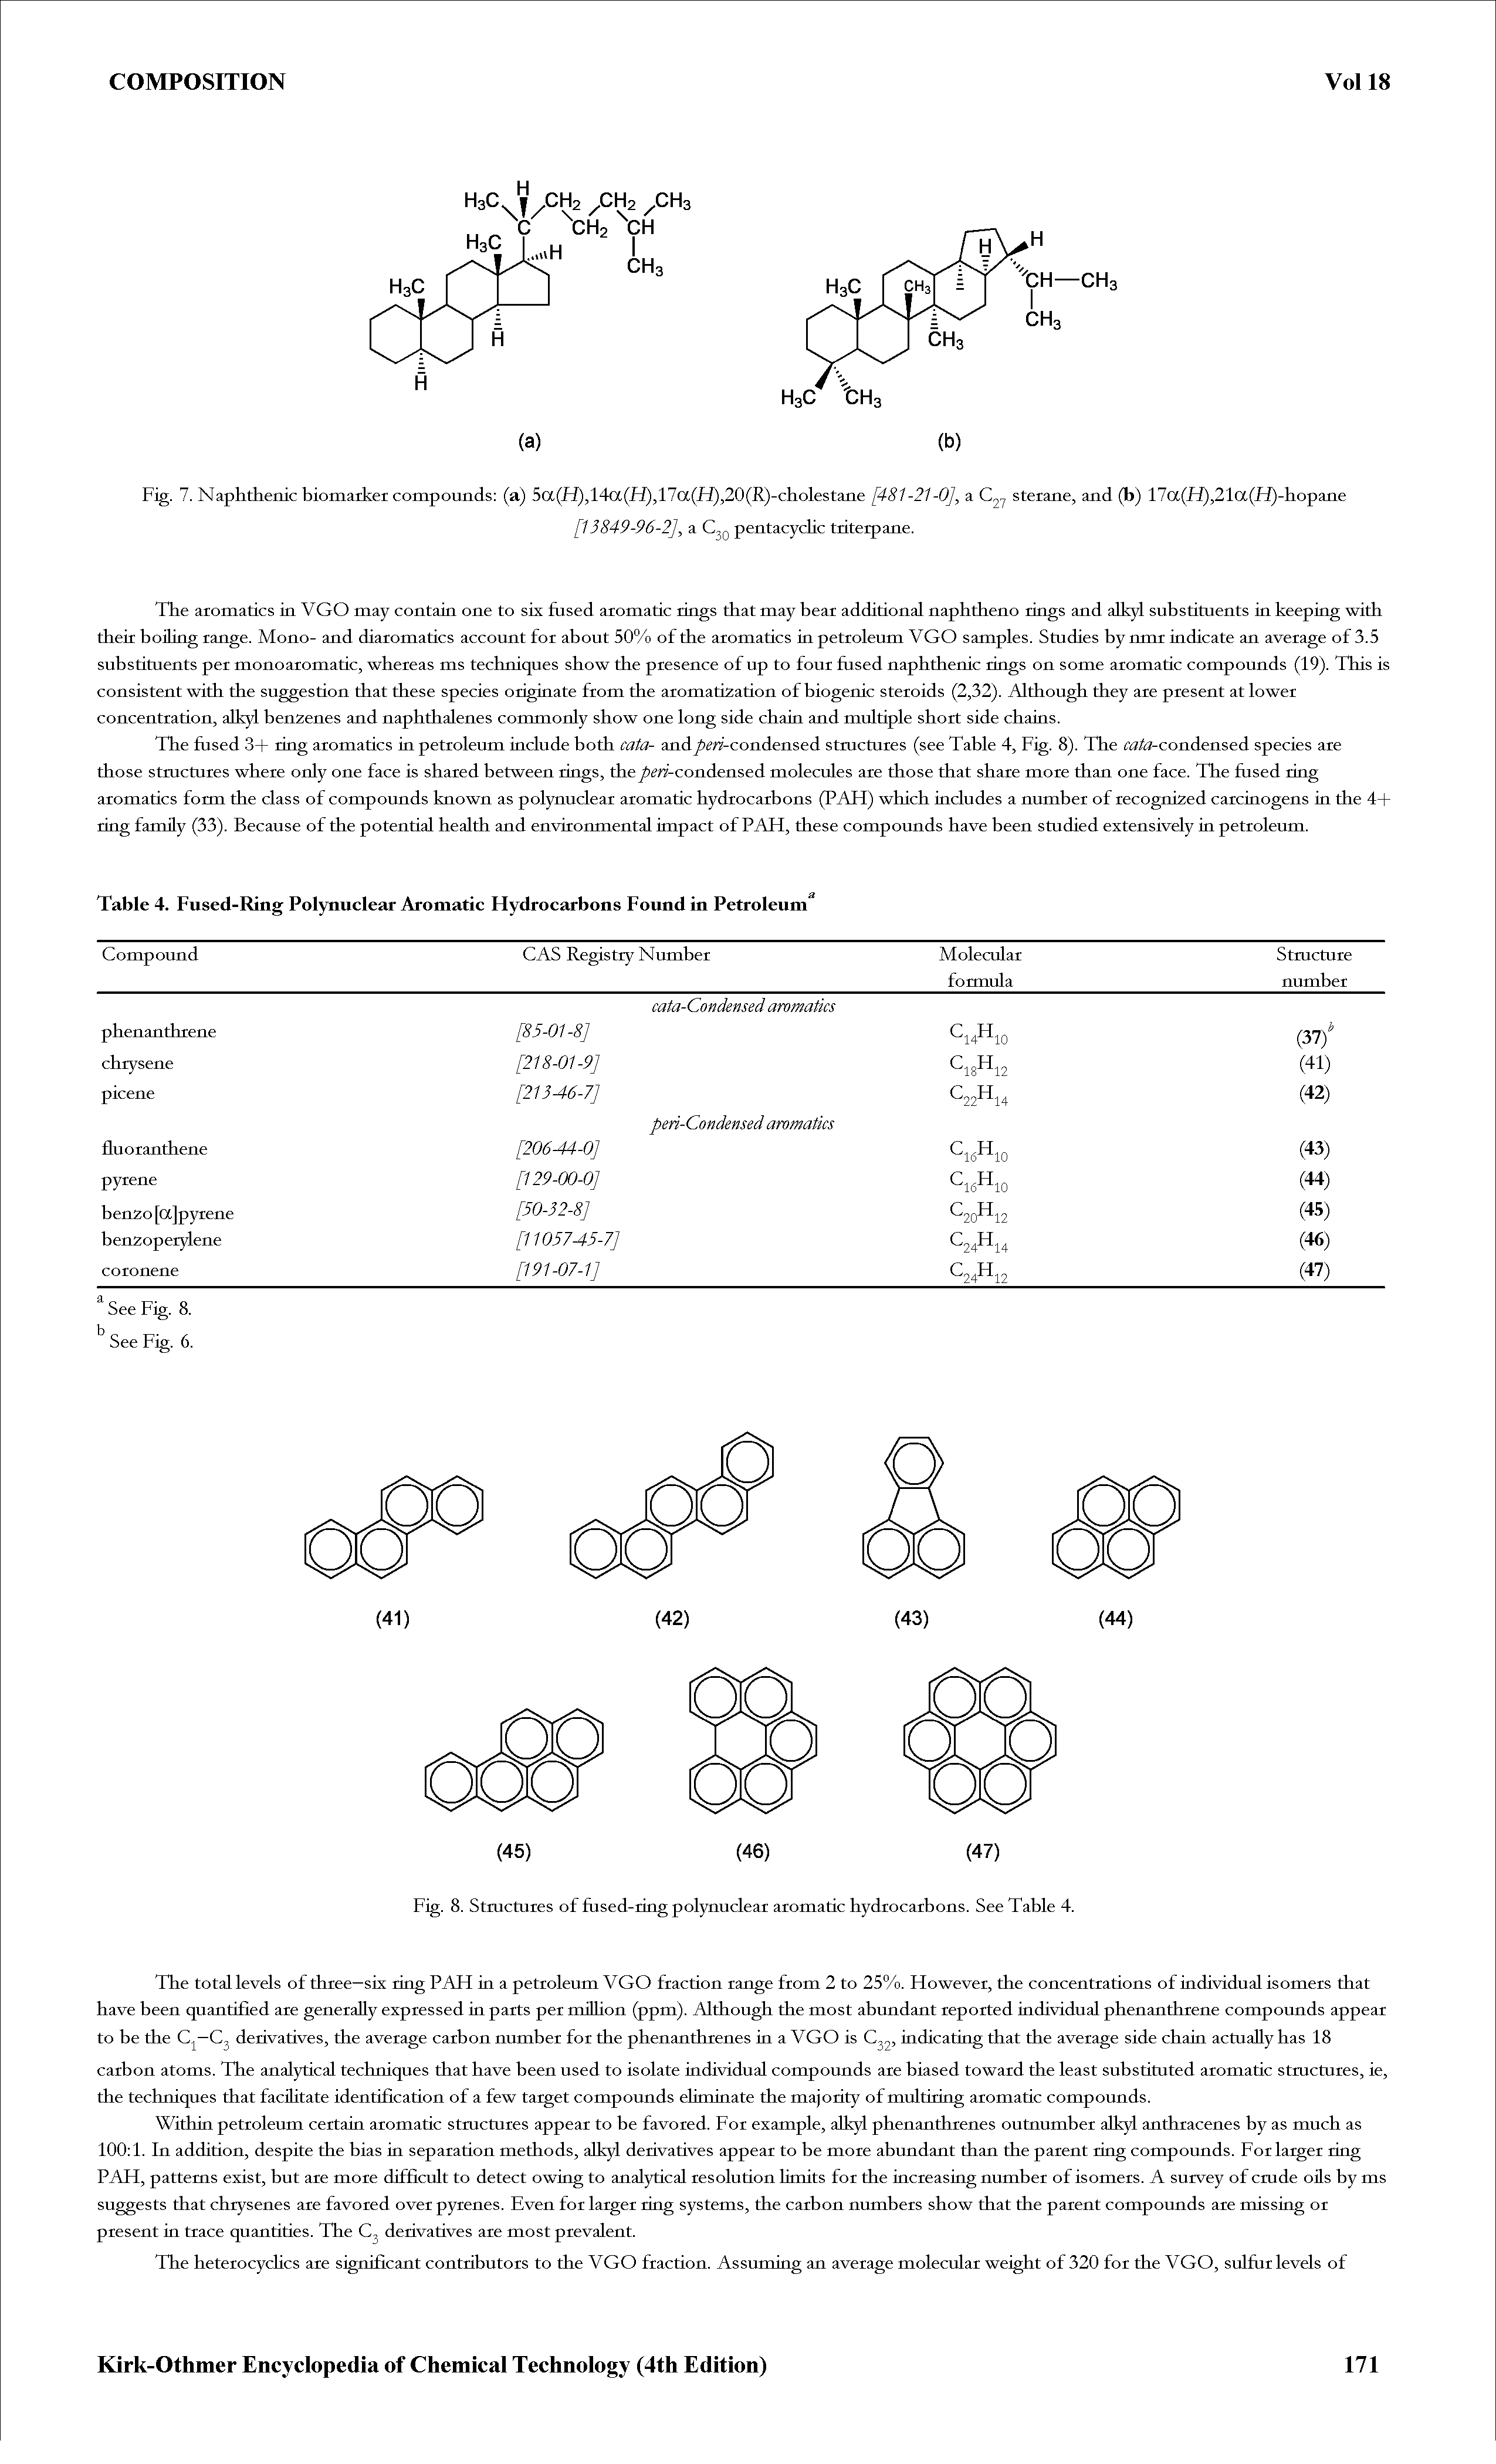 "Fig. 8. Stmctures of <a href=""/info/fused_rings"">fused-ring</a> <a href=""/info/polynuclear_aromatic_hydrocarbons"">polynuclear aromatic hydrocarbons</a>. See Table 4."